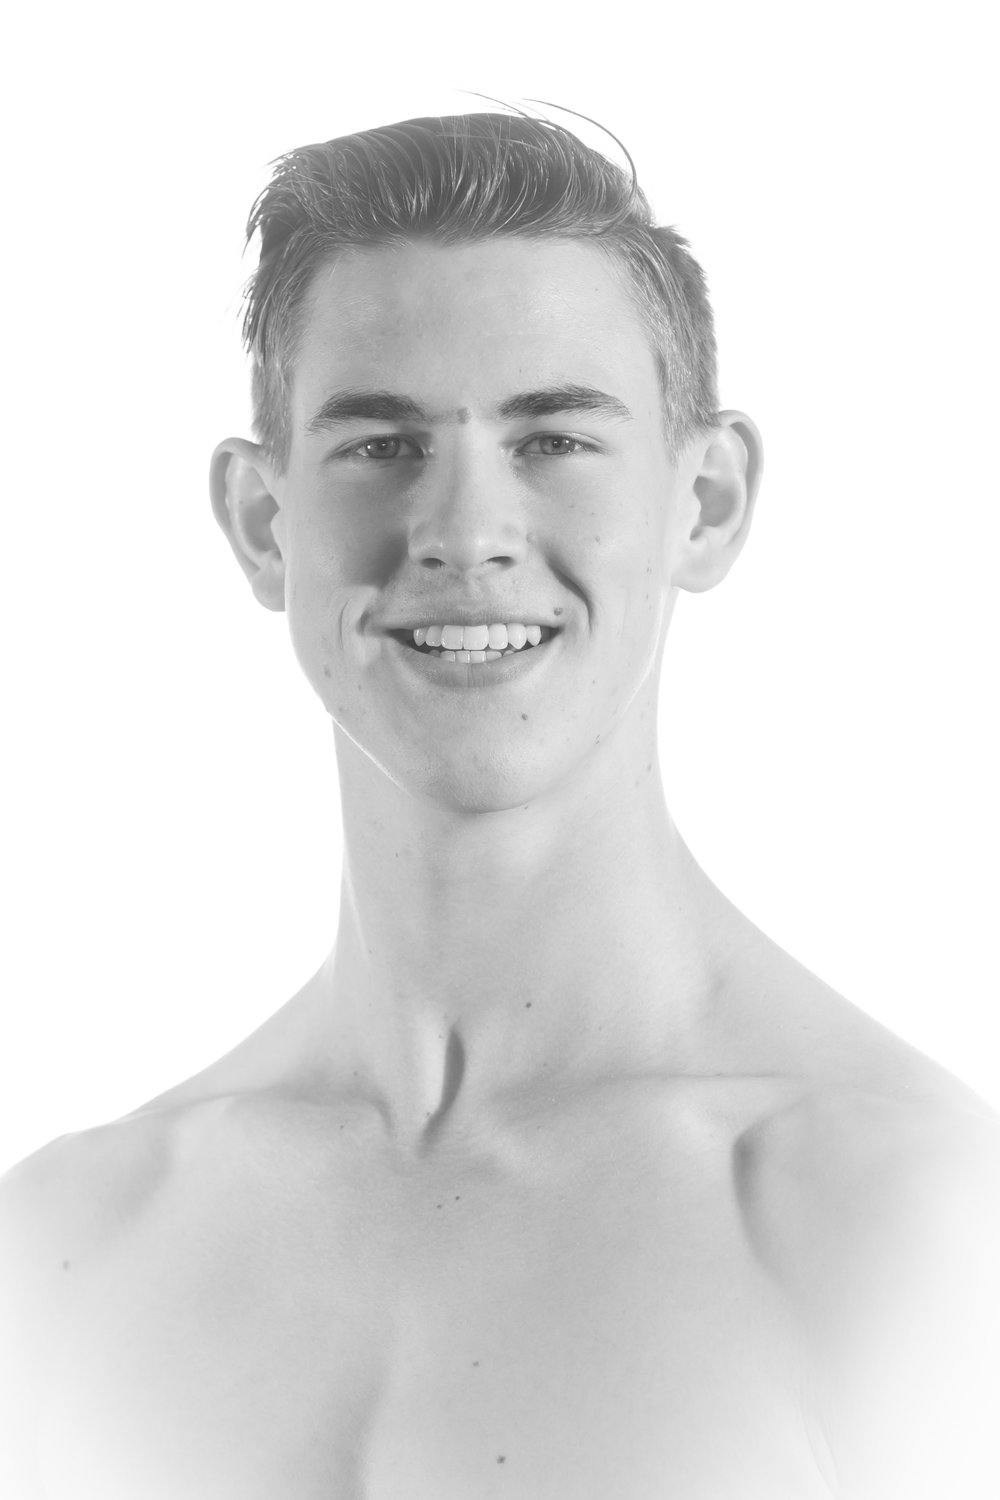 David Sims Junior Artist   David joins us from Moss Vale, New South Wales Australia this year, in his first professional position. He began his training with Angus & Lucinda's Academie de Danse. Where he completed his Advanced Diploma of Dance.  He then furthered his training internationally at Jeune Ballet D'aquitaine in Bordeaux, France for 2 years. Before continuing his studies at Ecole superieure de danse de Cannes Rosella Highwater.    We are excited to have him back in Australia to commence his career with us here at Melbourne City Ballet.